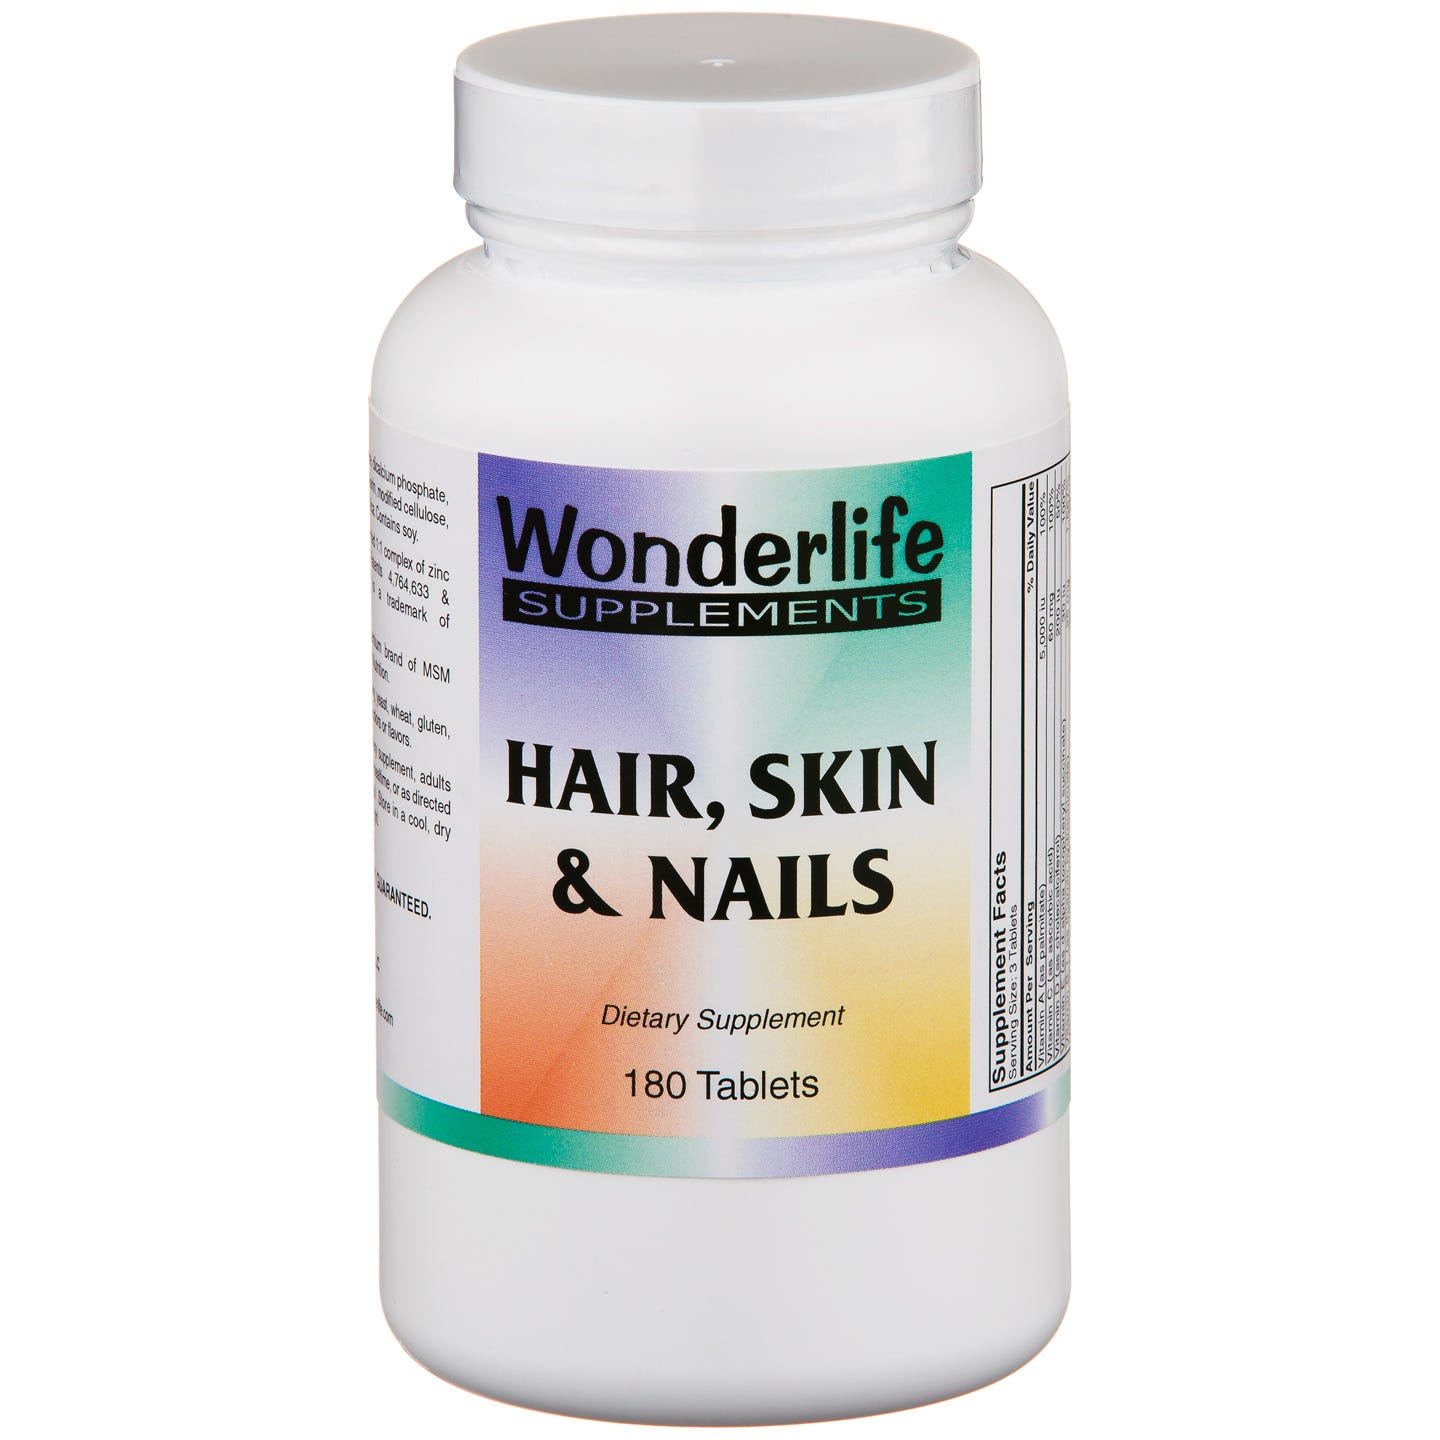 Hair Skin & Nails Supplement (180 ct) - Wonderlife - Rapid Diet Weight Loss Products Shop